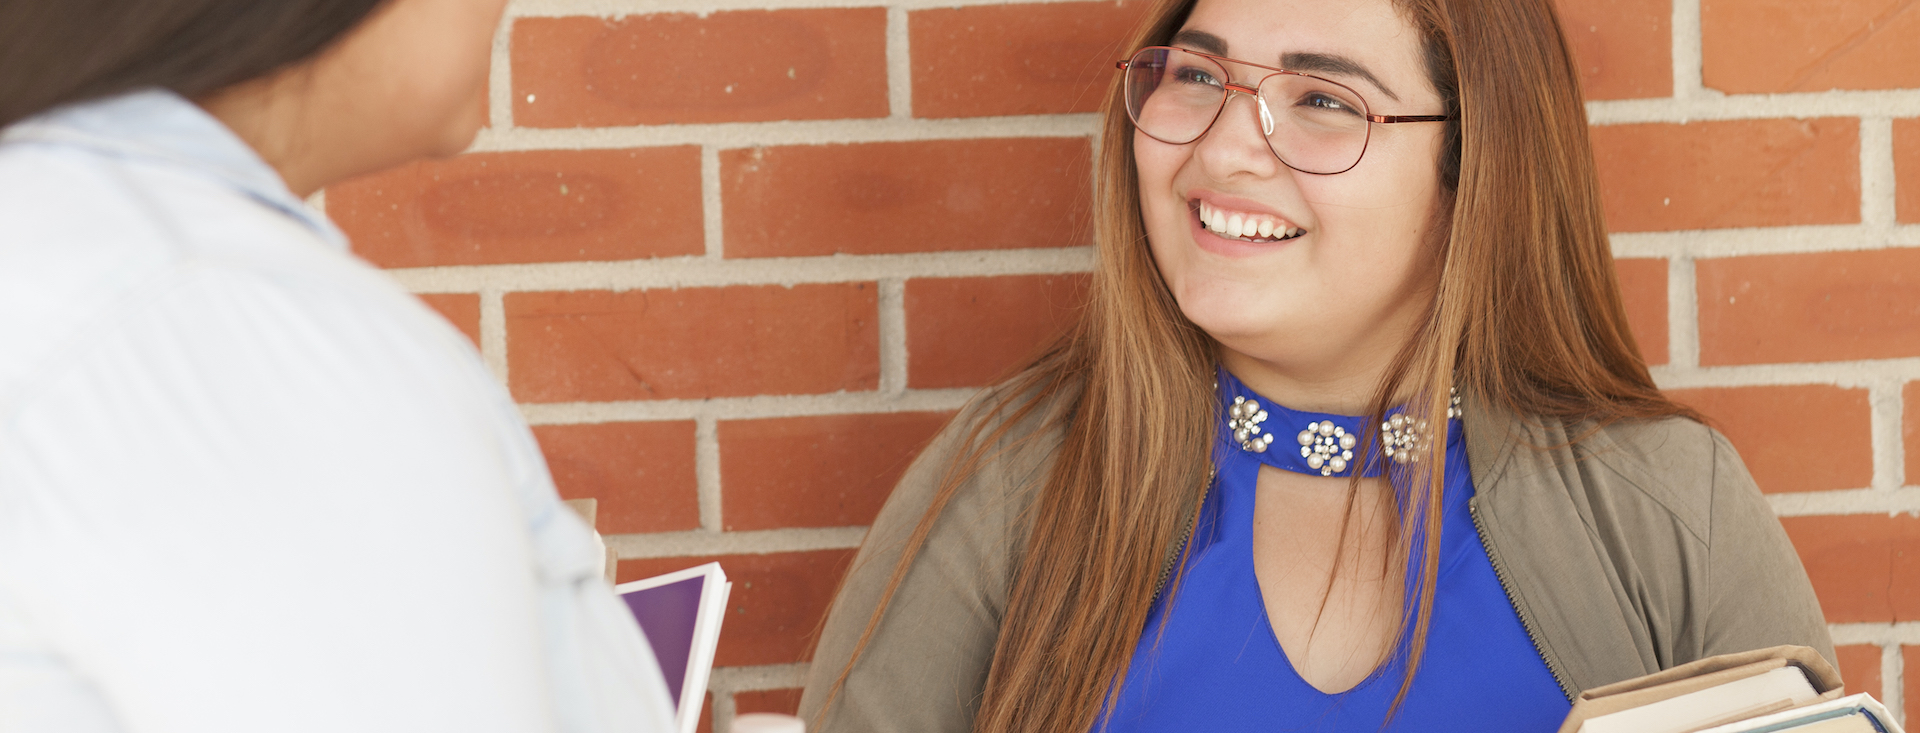 Young person wearing glasses and blue top smiling